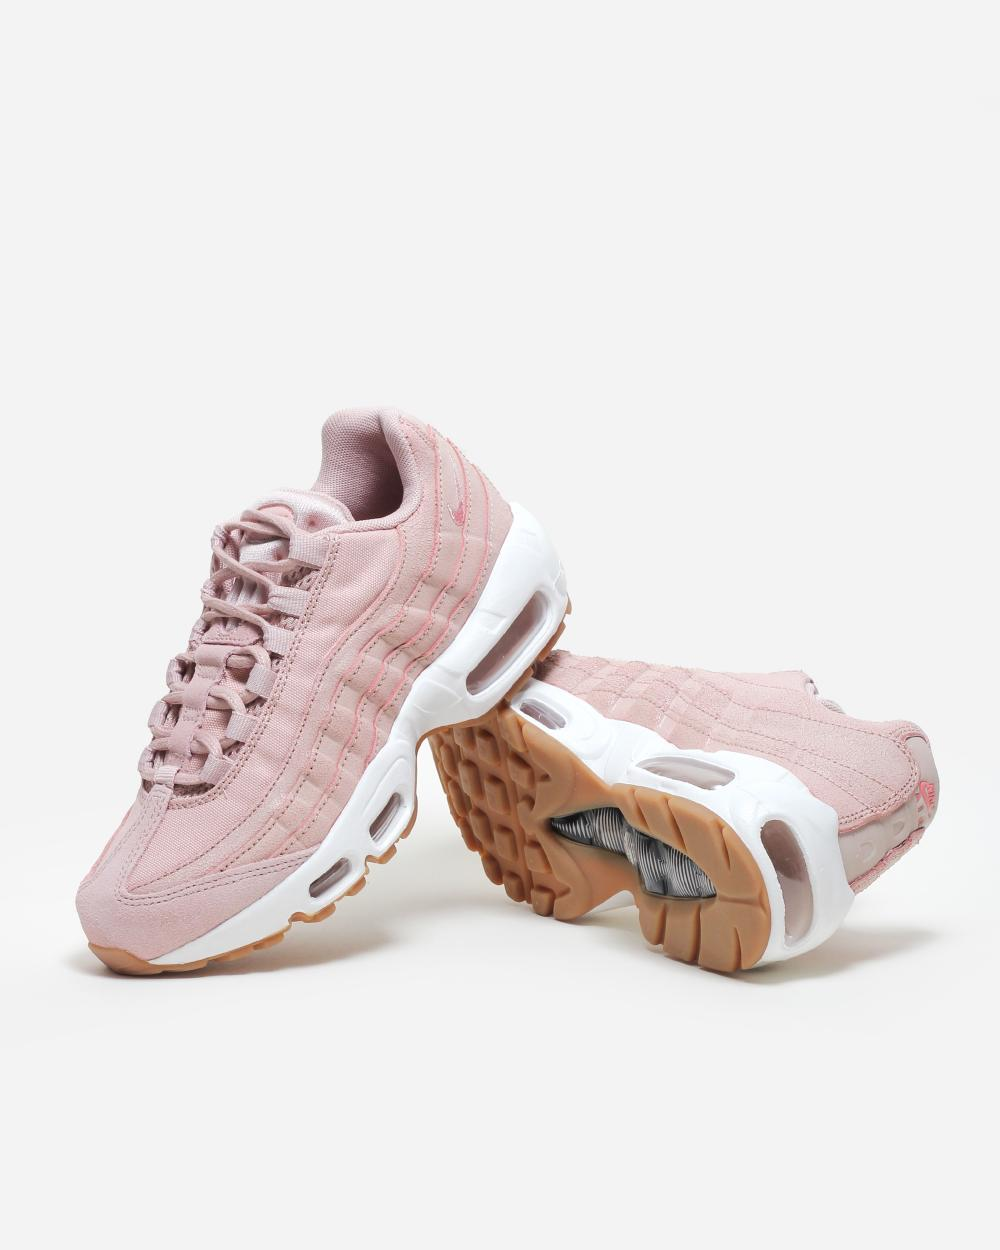 Air Max 95's Are Cotton Candy Sweet